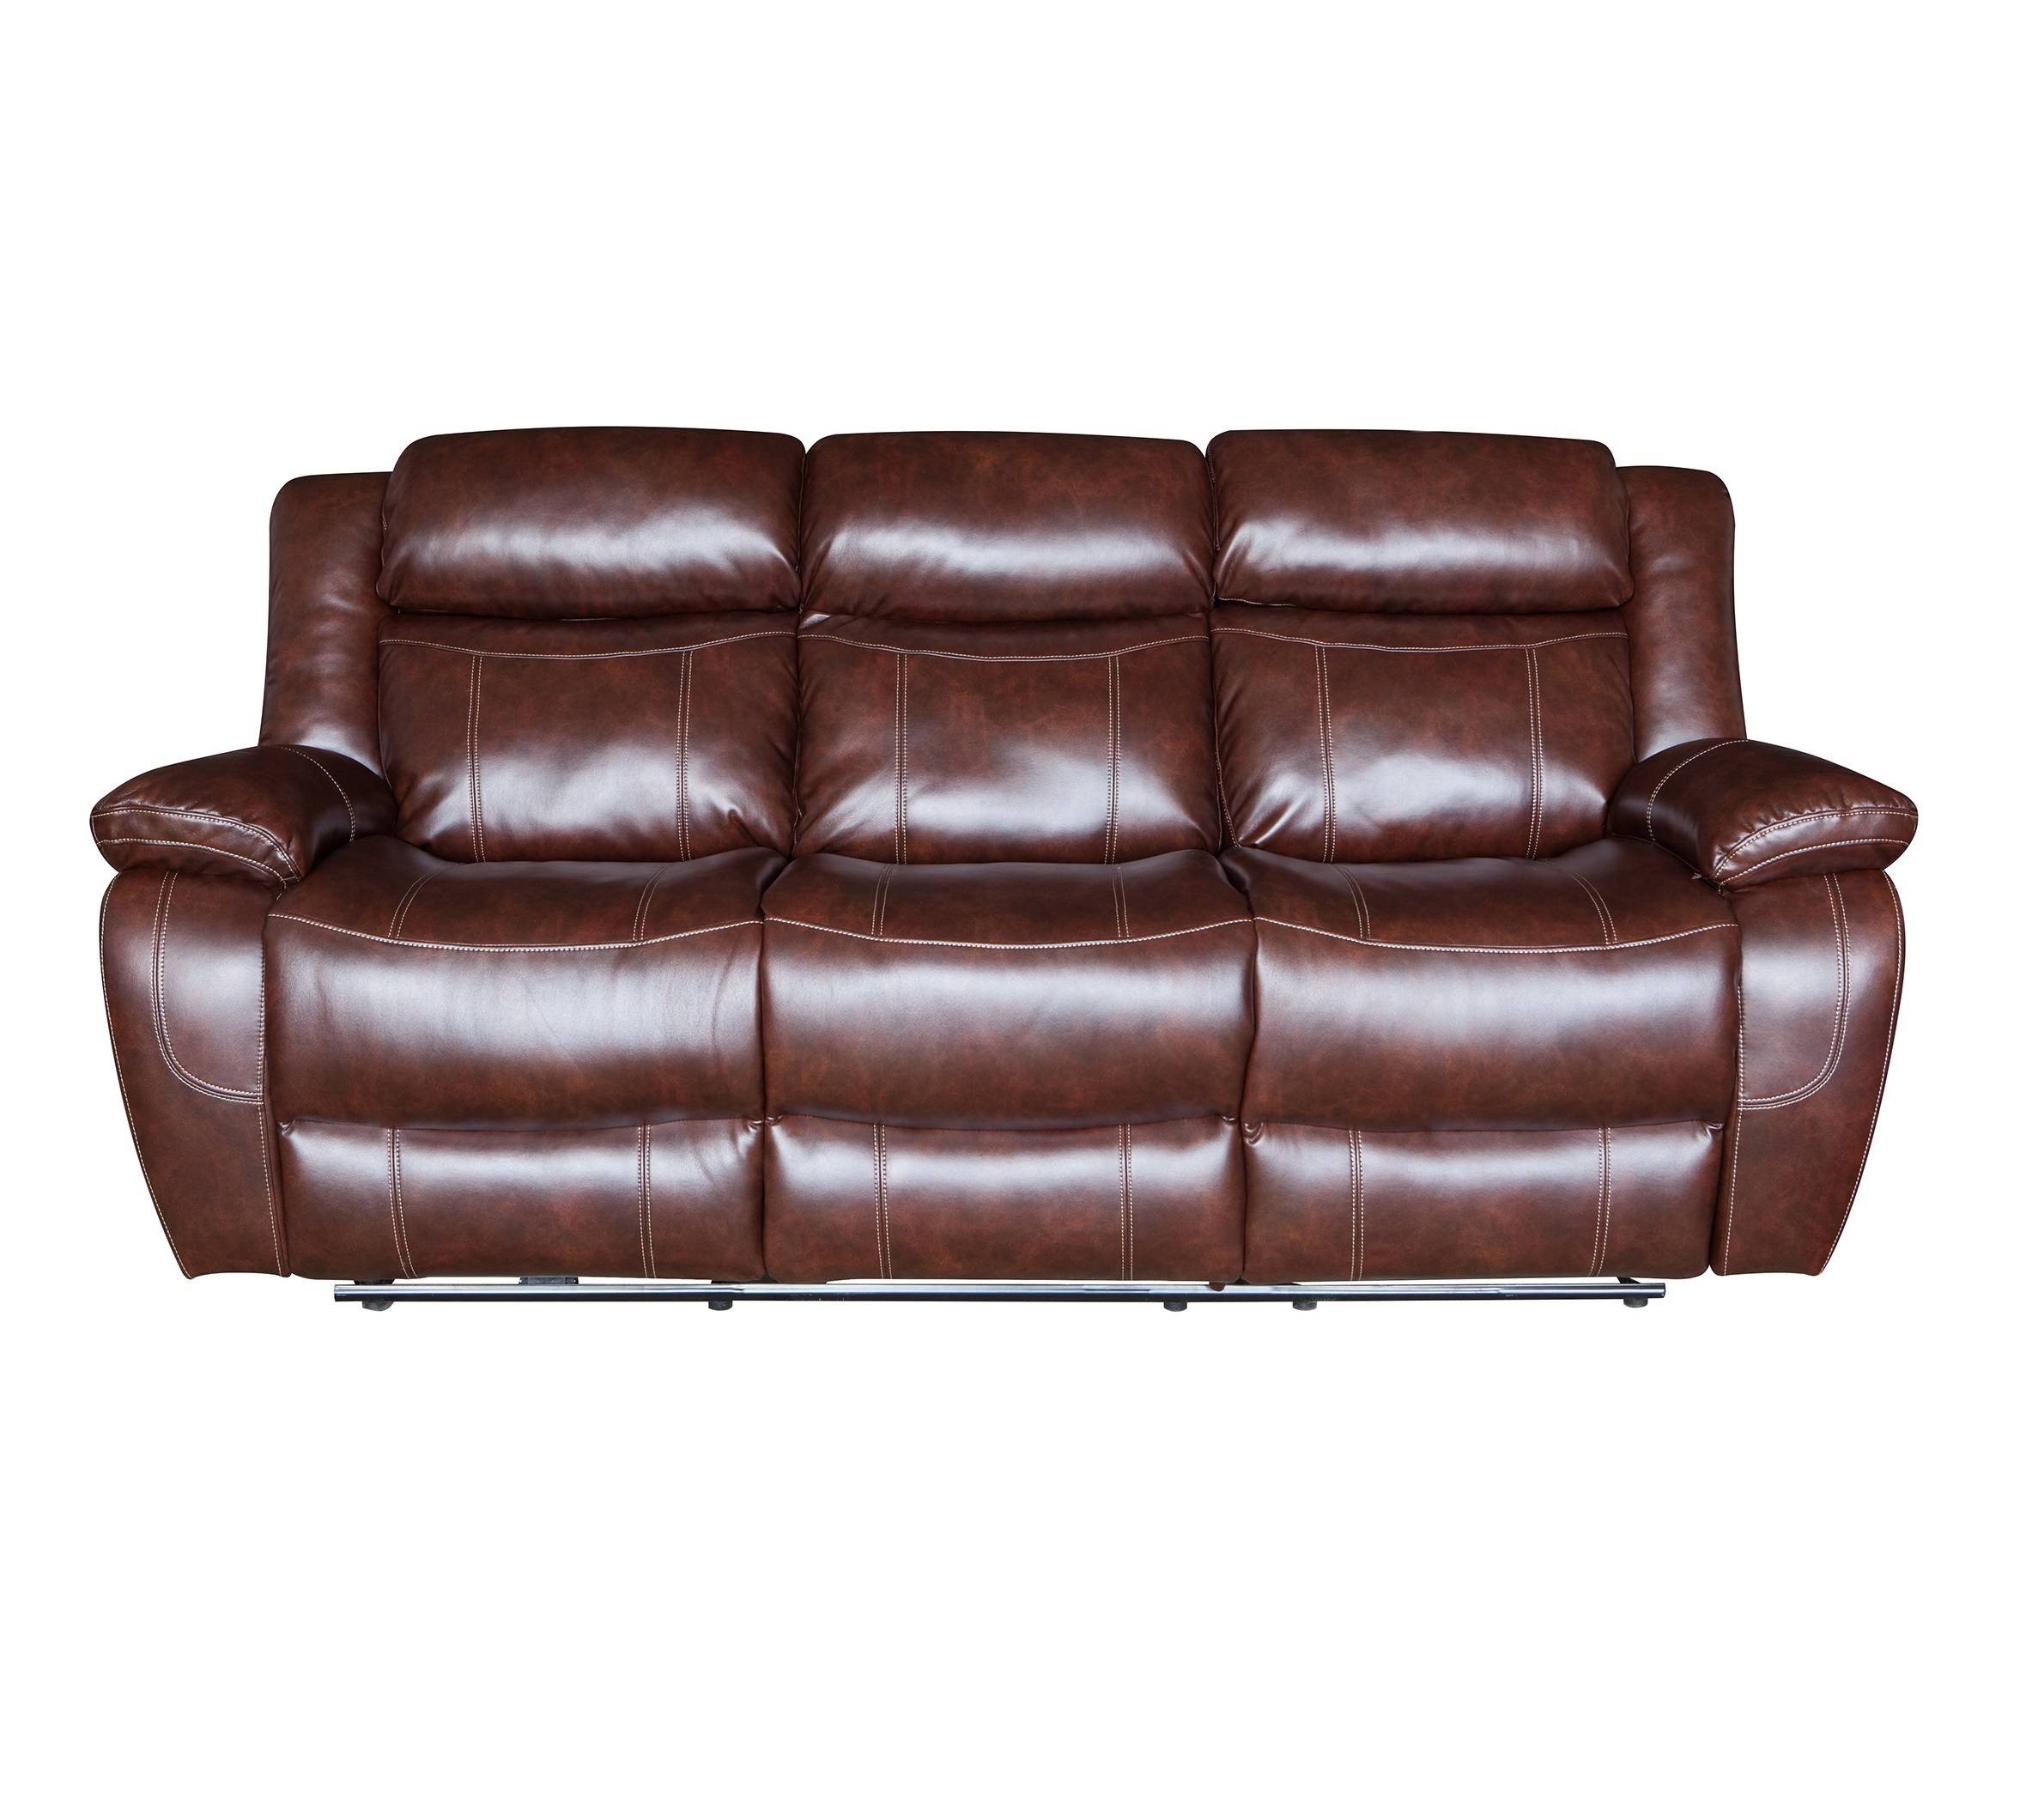 High quality leather home furniture luxury 1 2 3 sofa set Featured Image